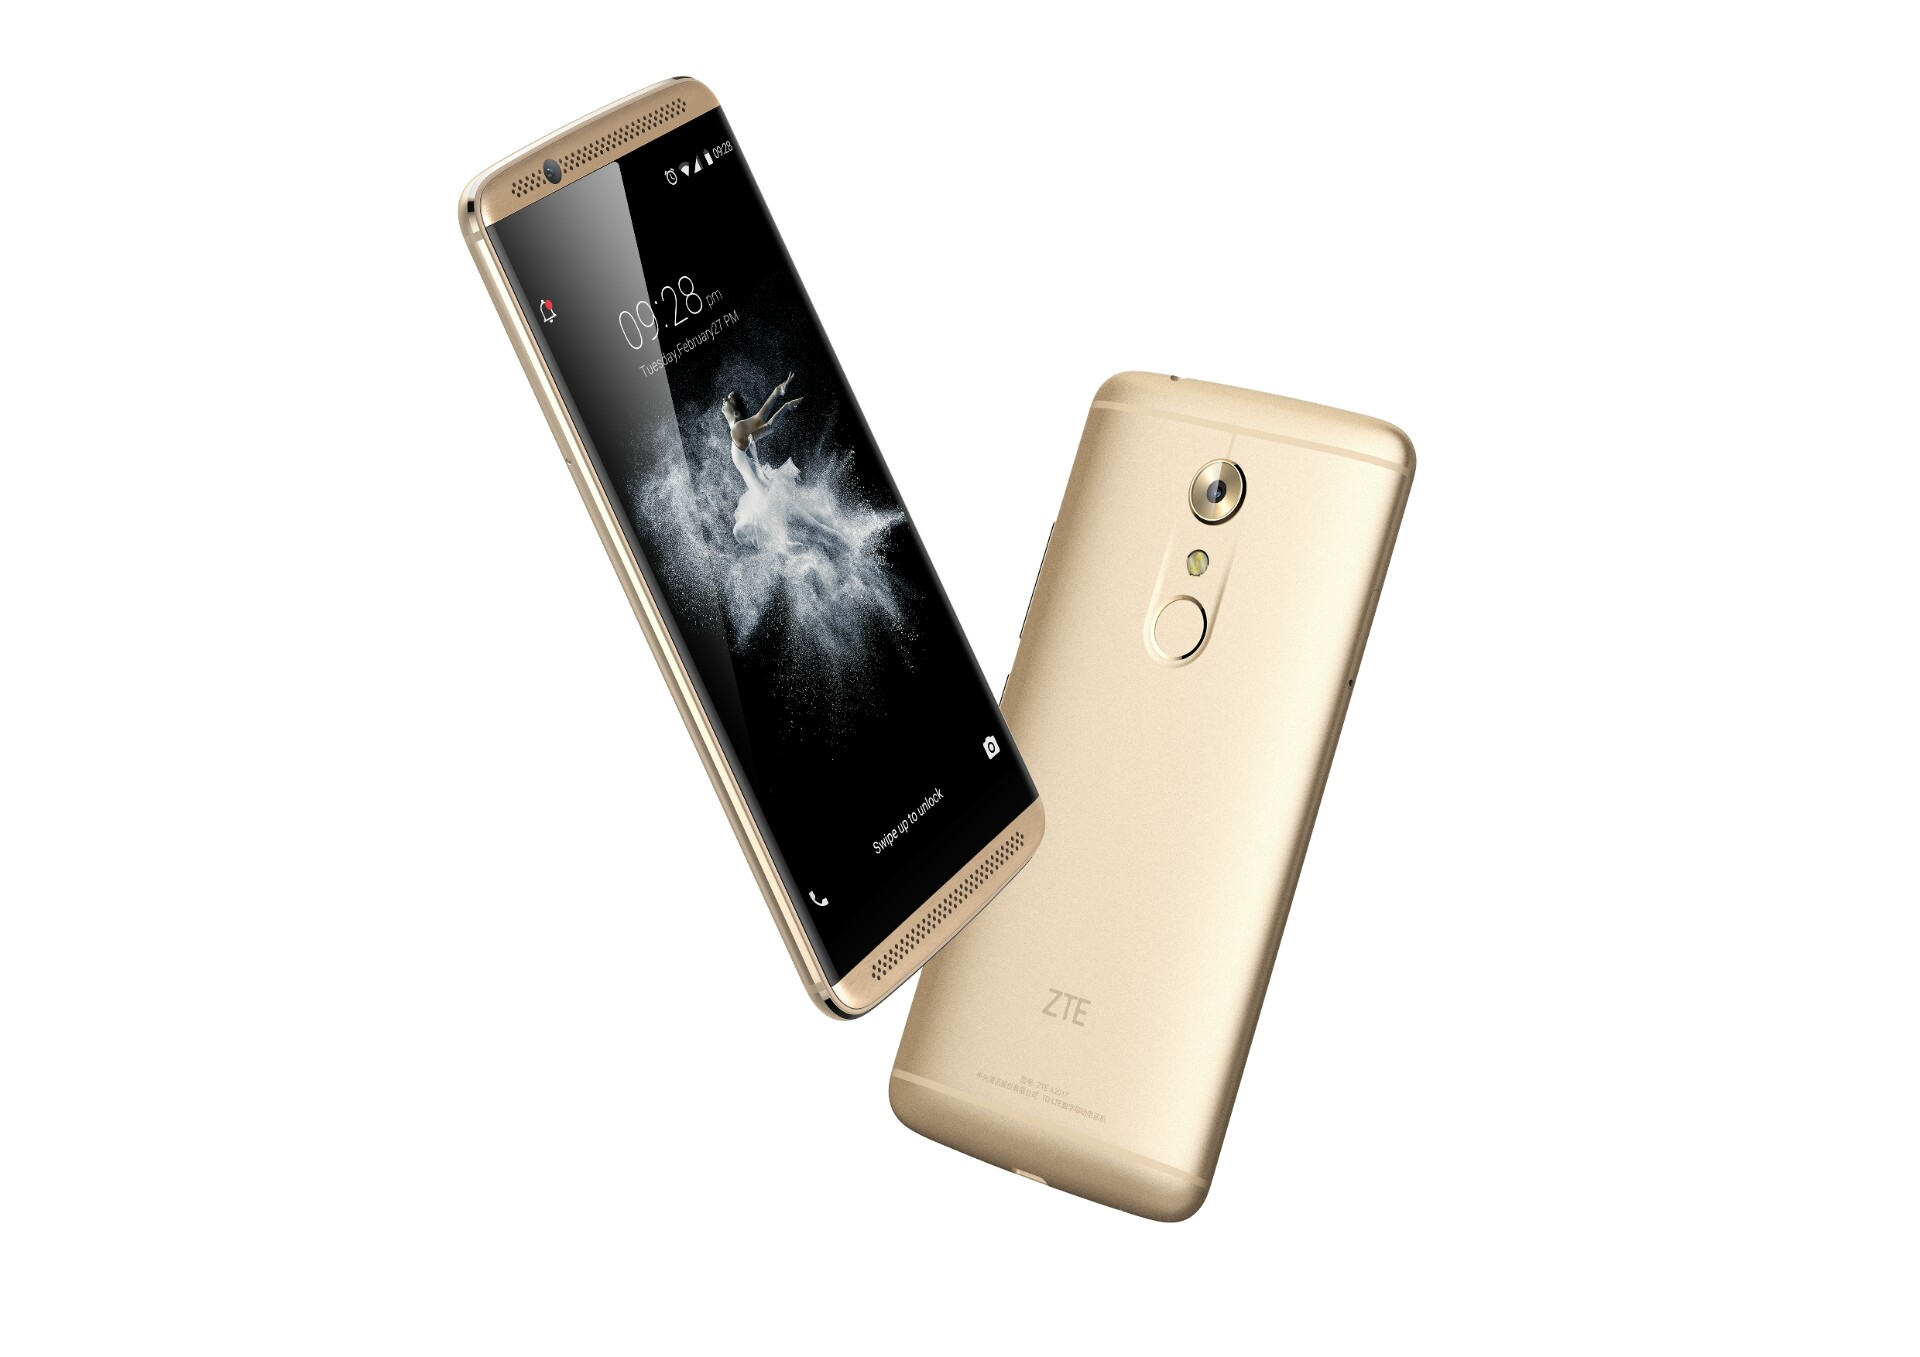 zte axon 7 mini lineageos Directory Does